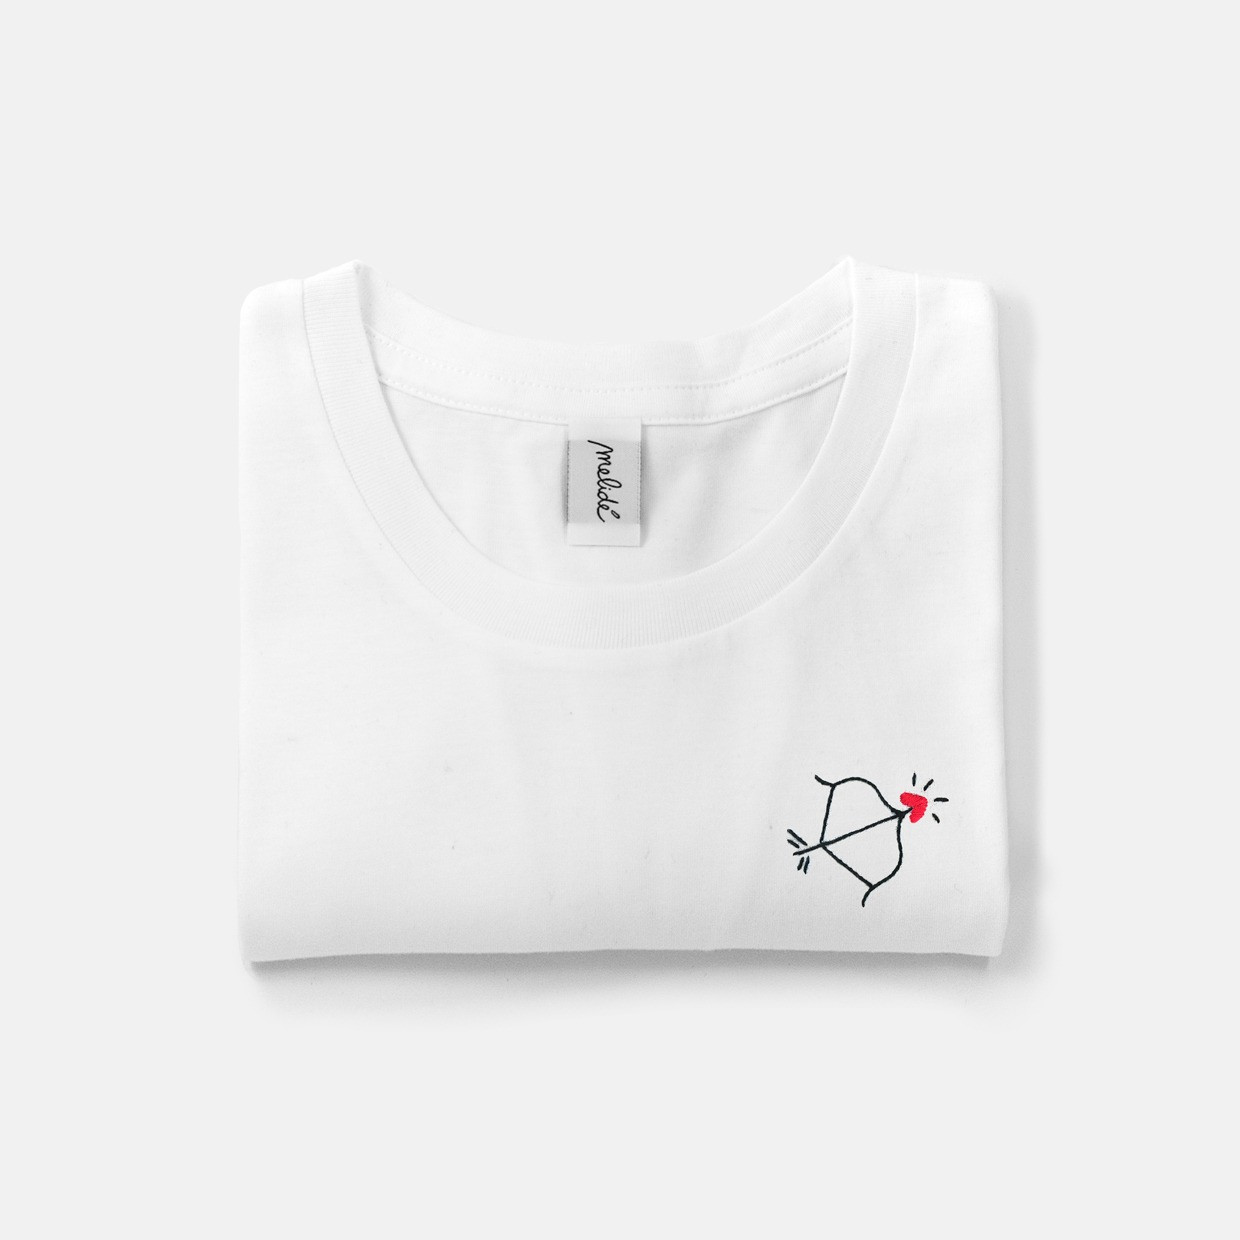 The LOVE AT FIRST SIGHT ultimate tee